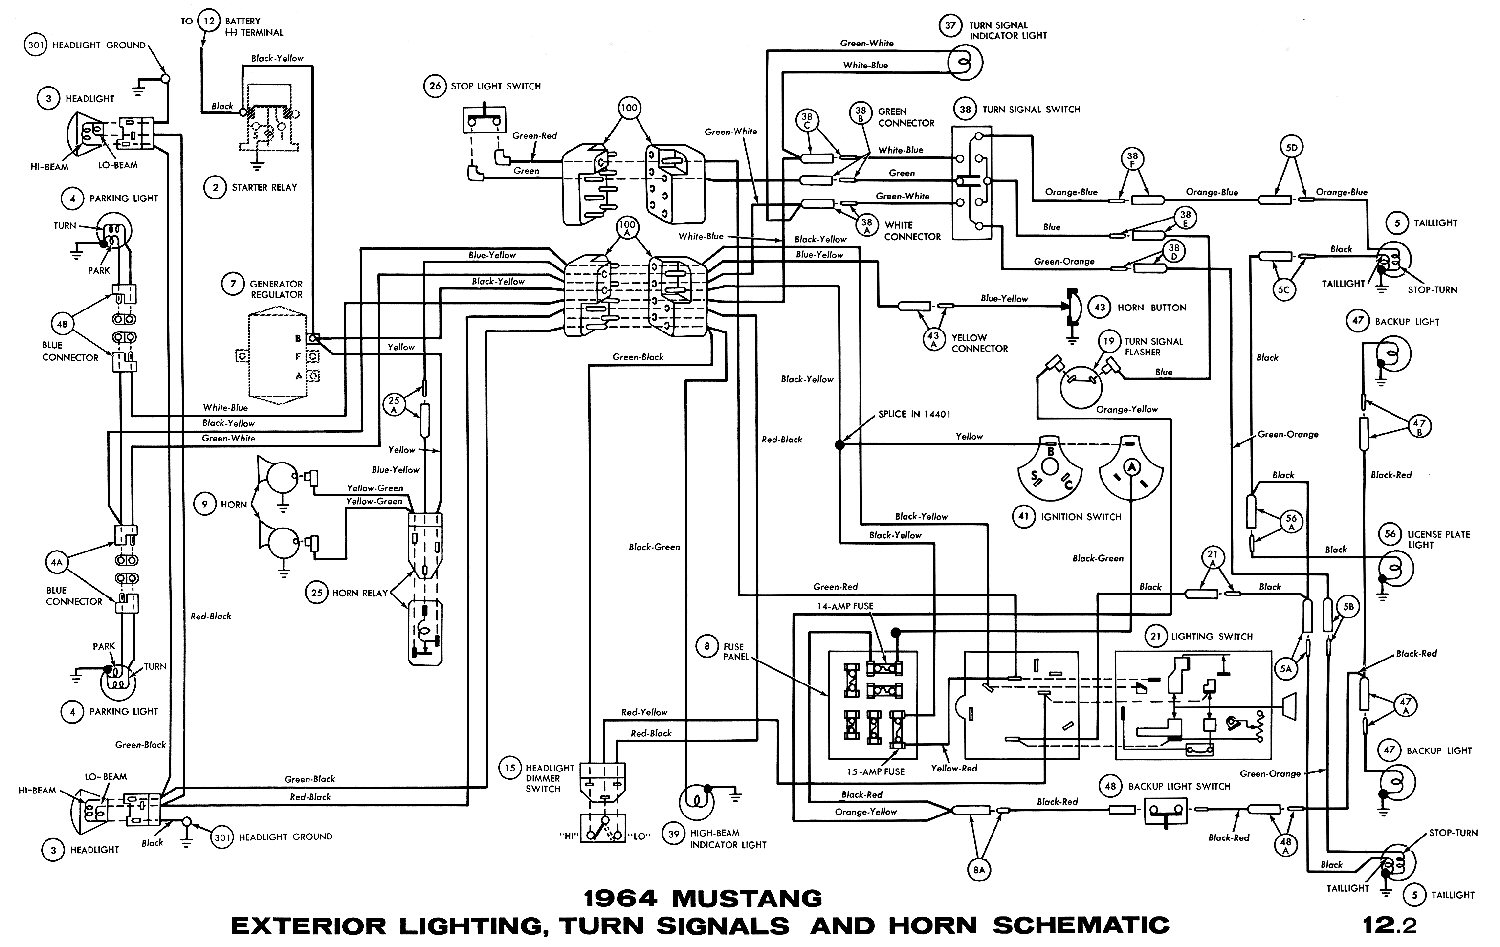 1964i wiring diagram for 1971 mustang readingrat net 1970 mustang mach 1 wiring diagram at gsmx.co